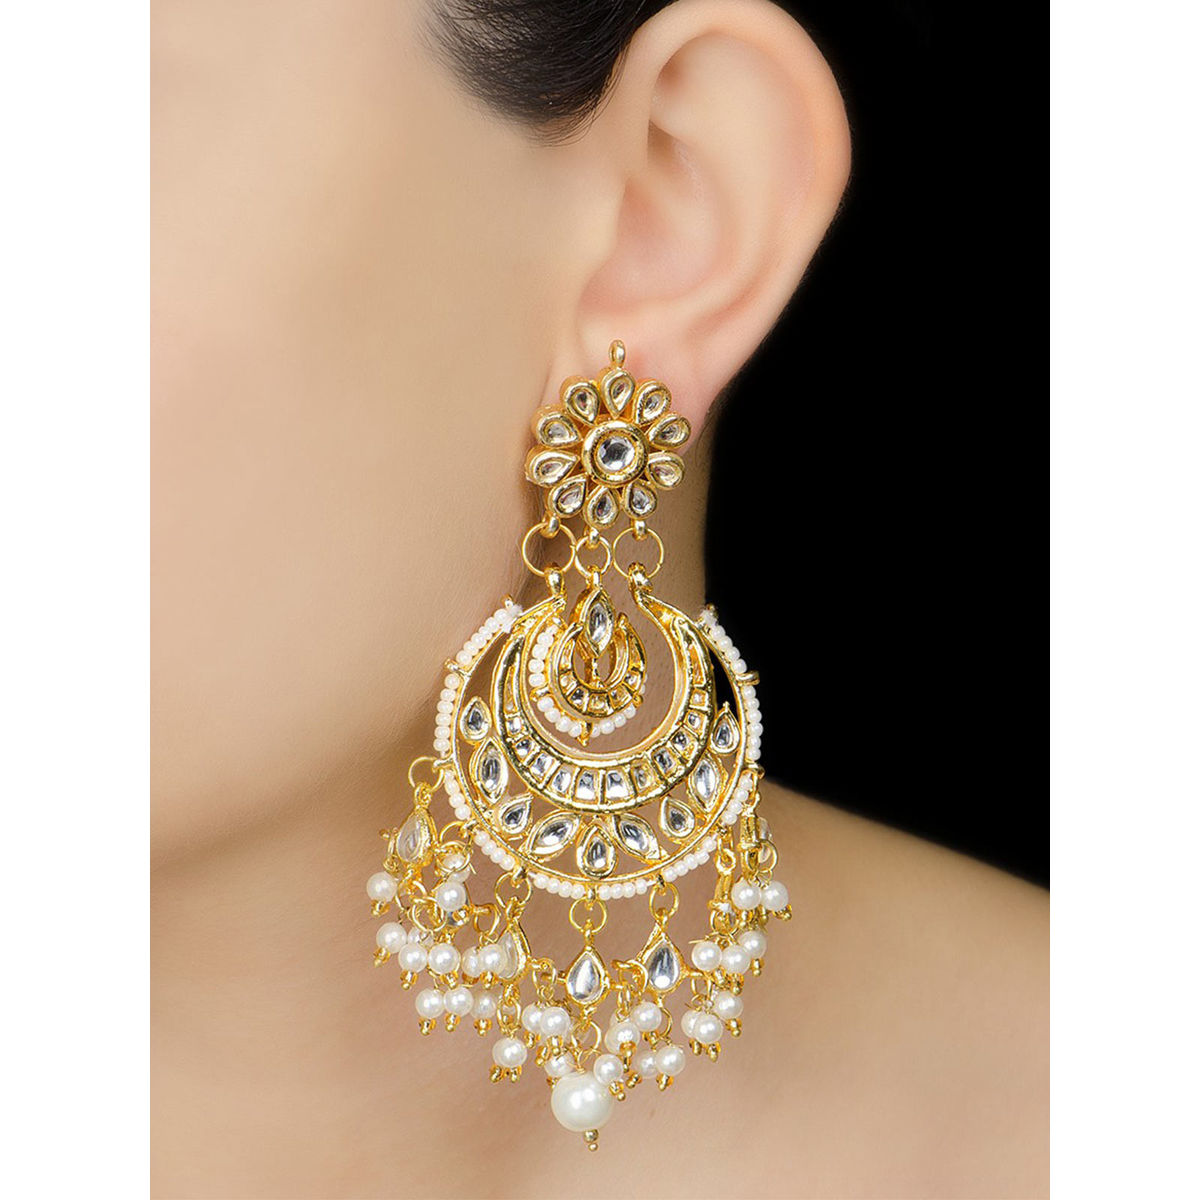 online buy with elegant for pearl golden product earrings women swanvi